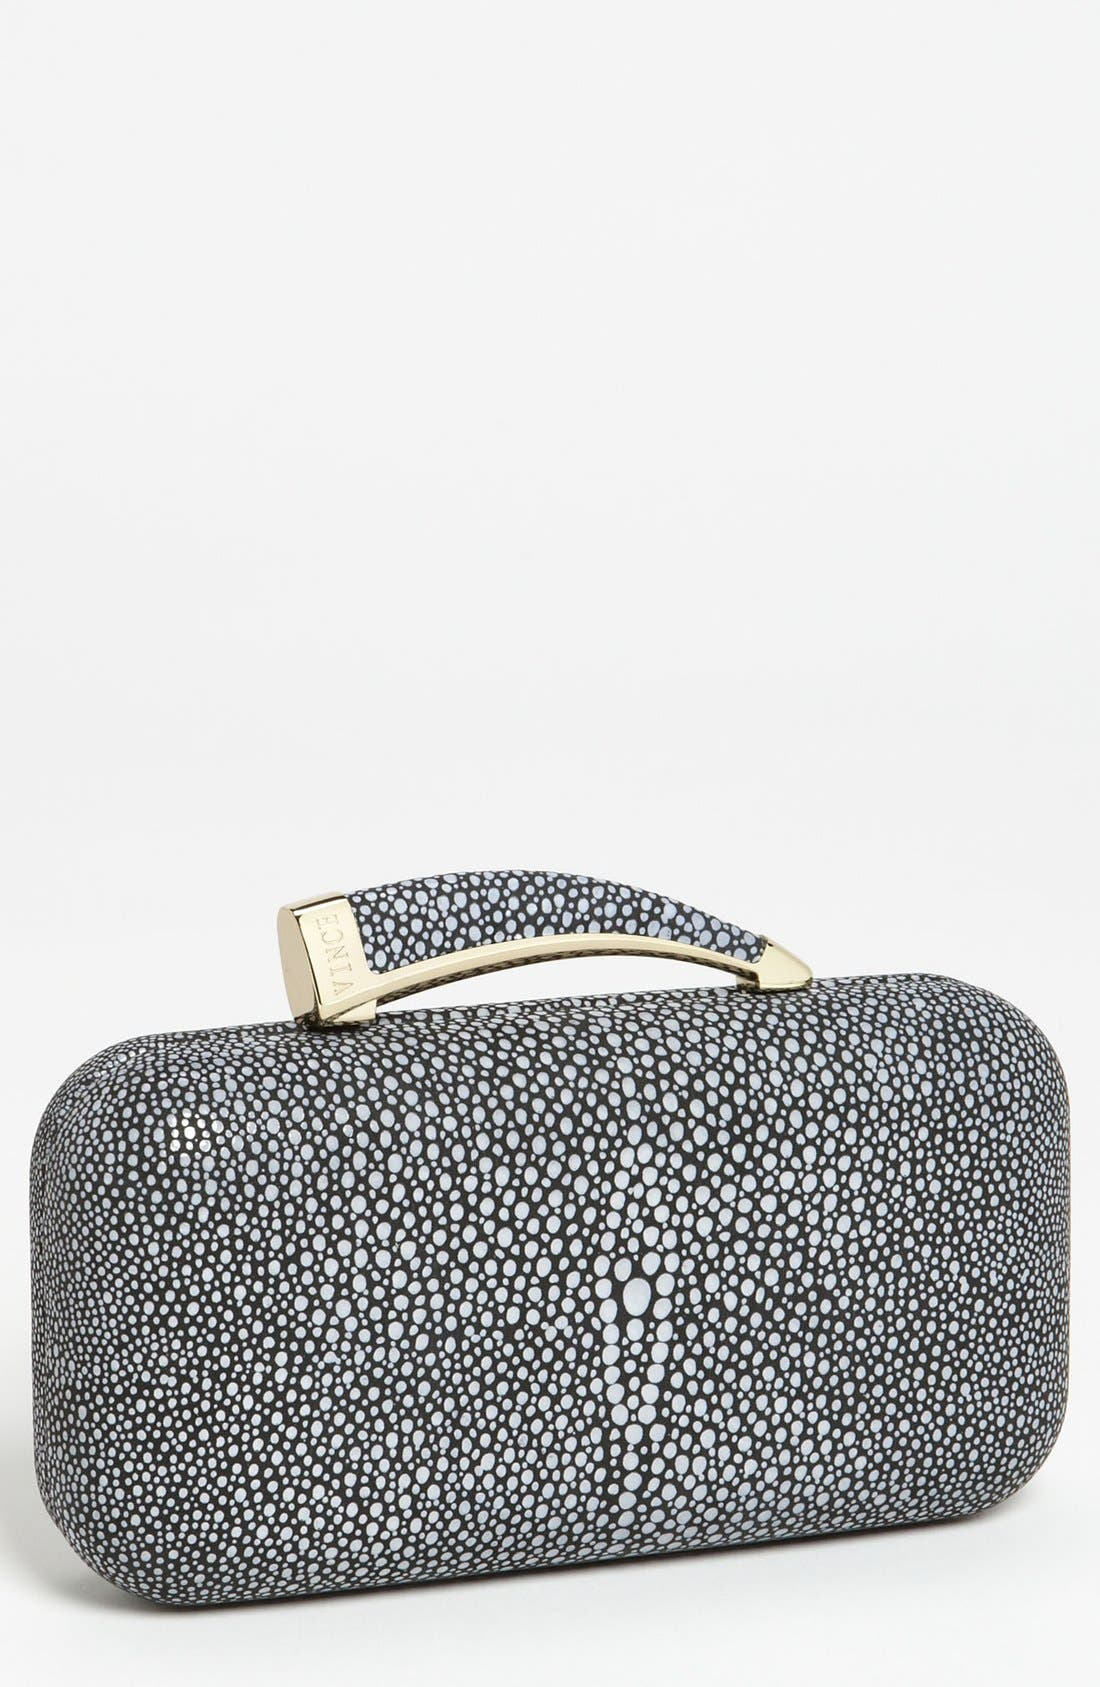 'Horn' Clutch,                         Main,                         color, 001